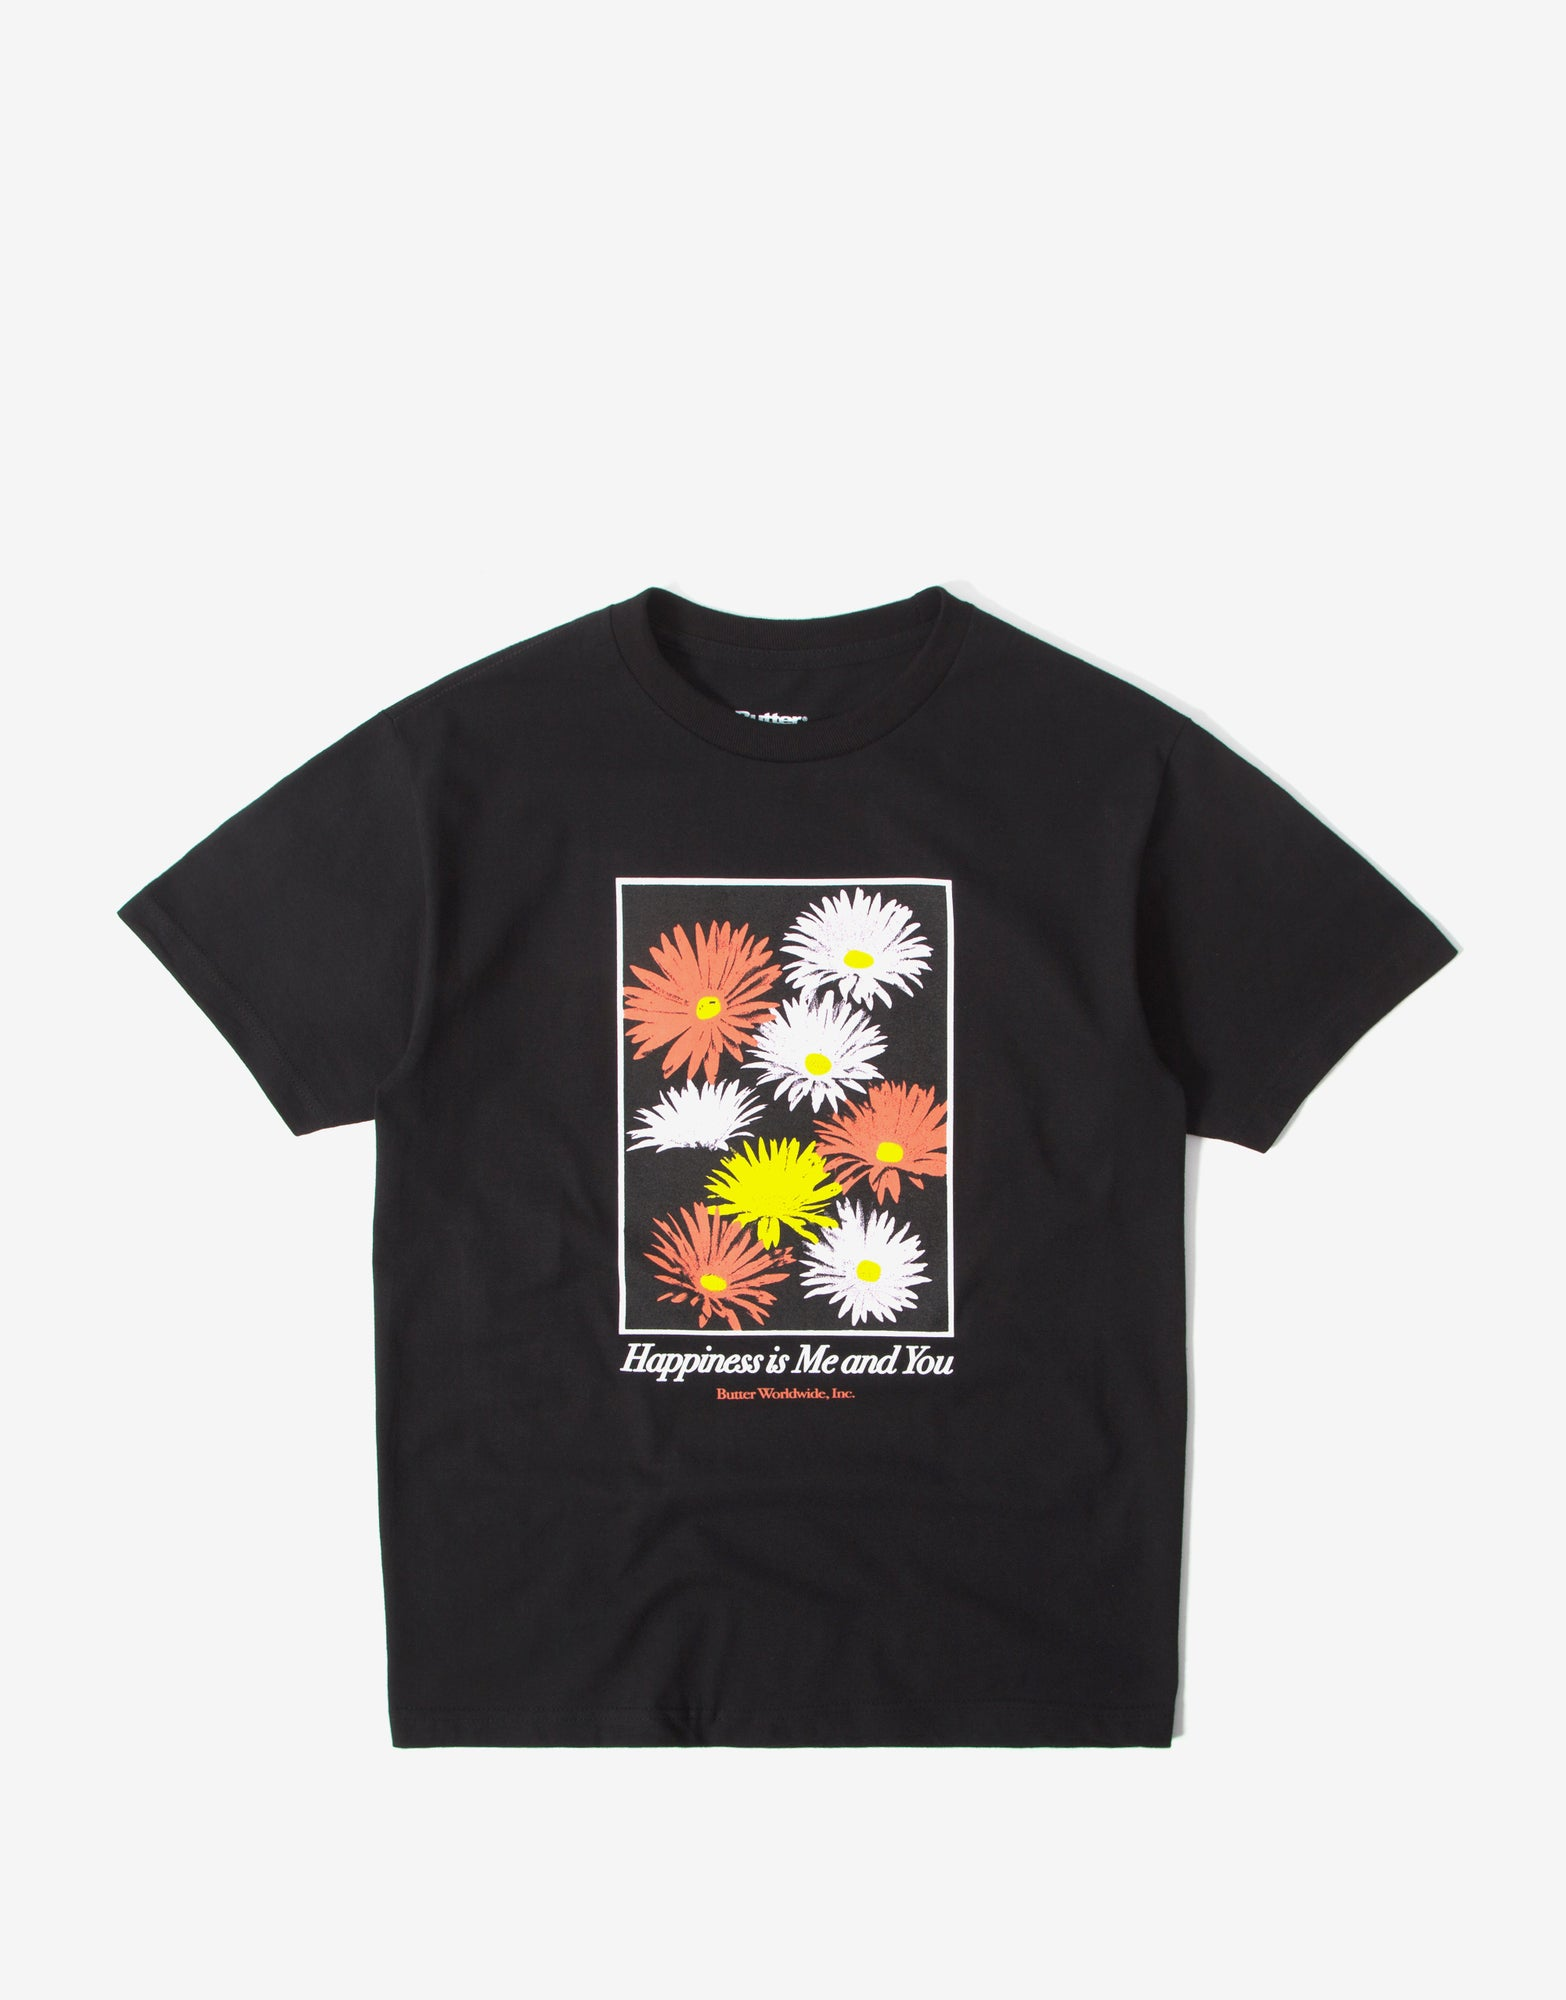 Butter Goods Happiness T Shirt - Black